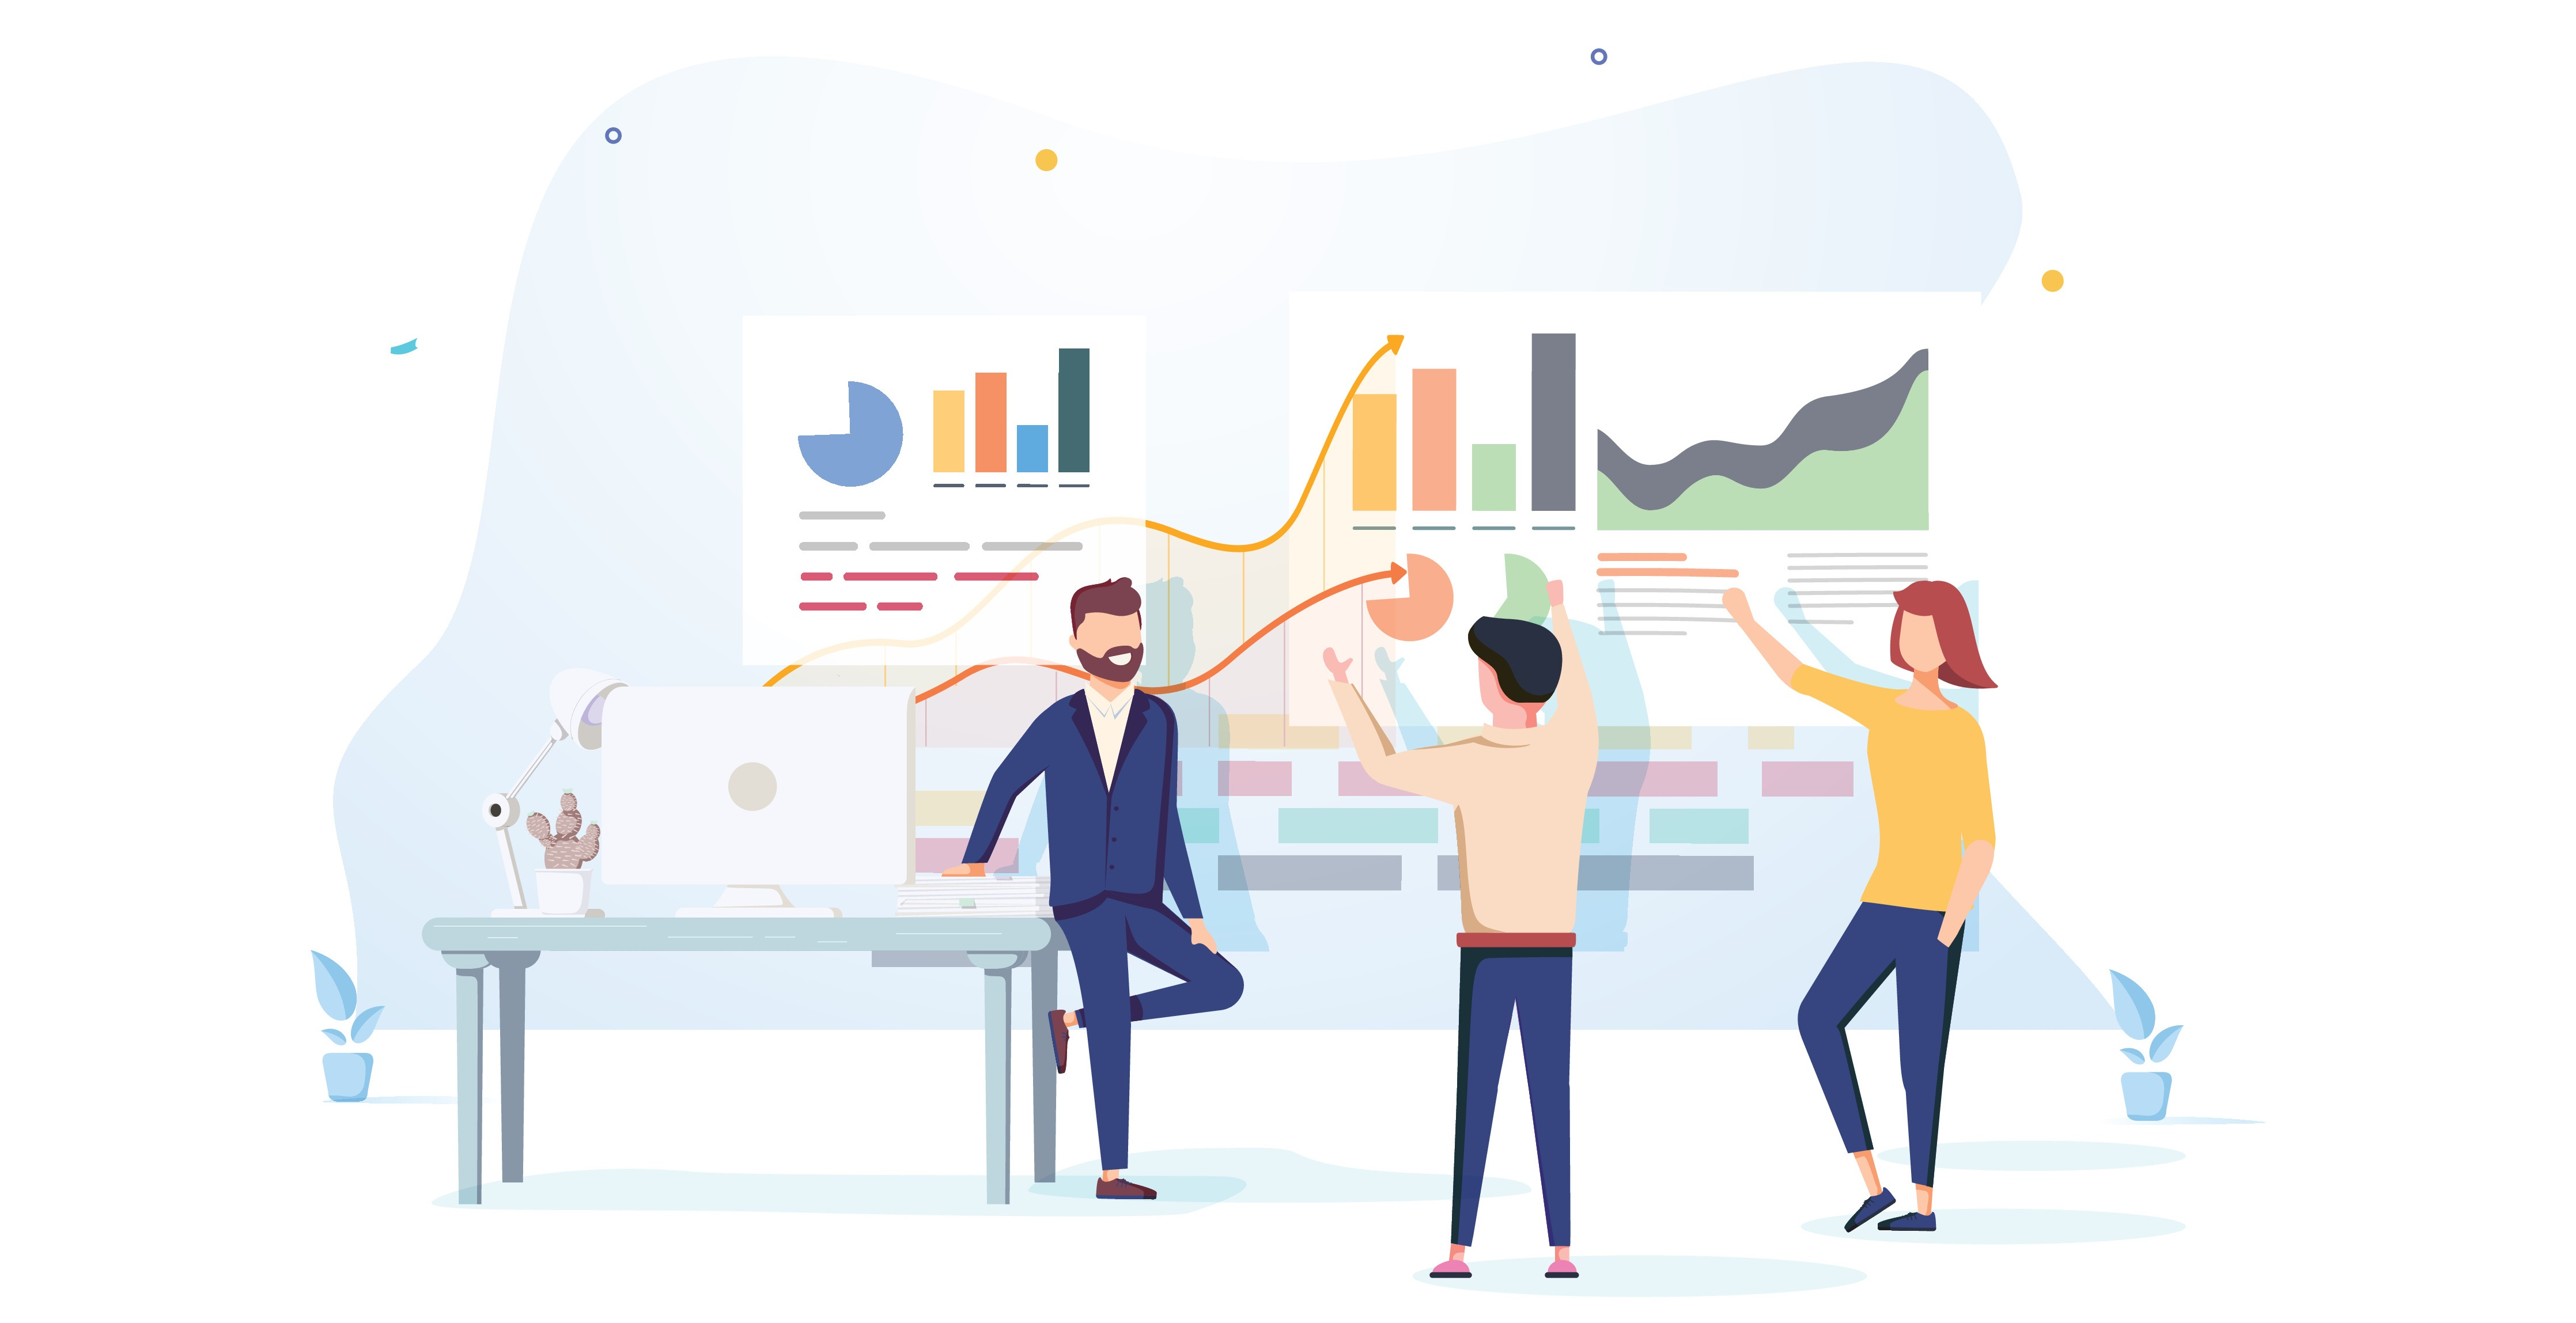 People interacting with charts and analyzing statistics. Data visualization concept. 3d vector illustration. People work